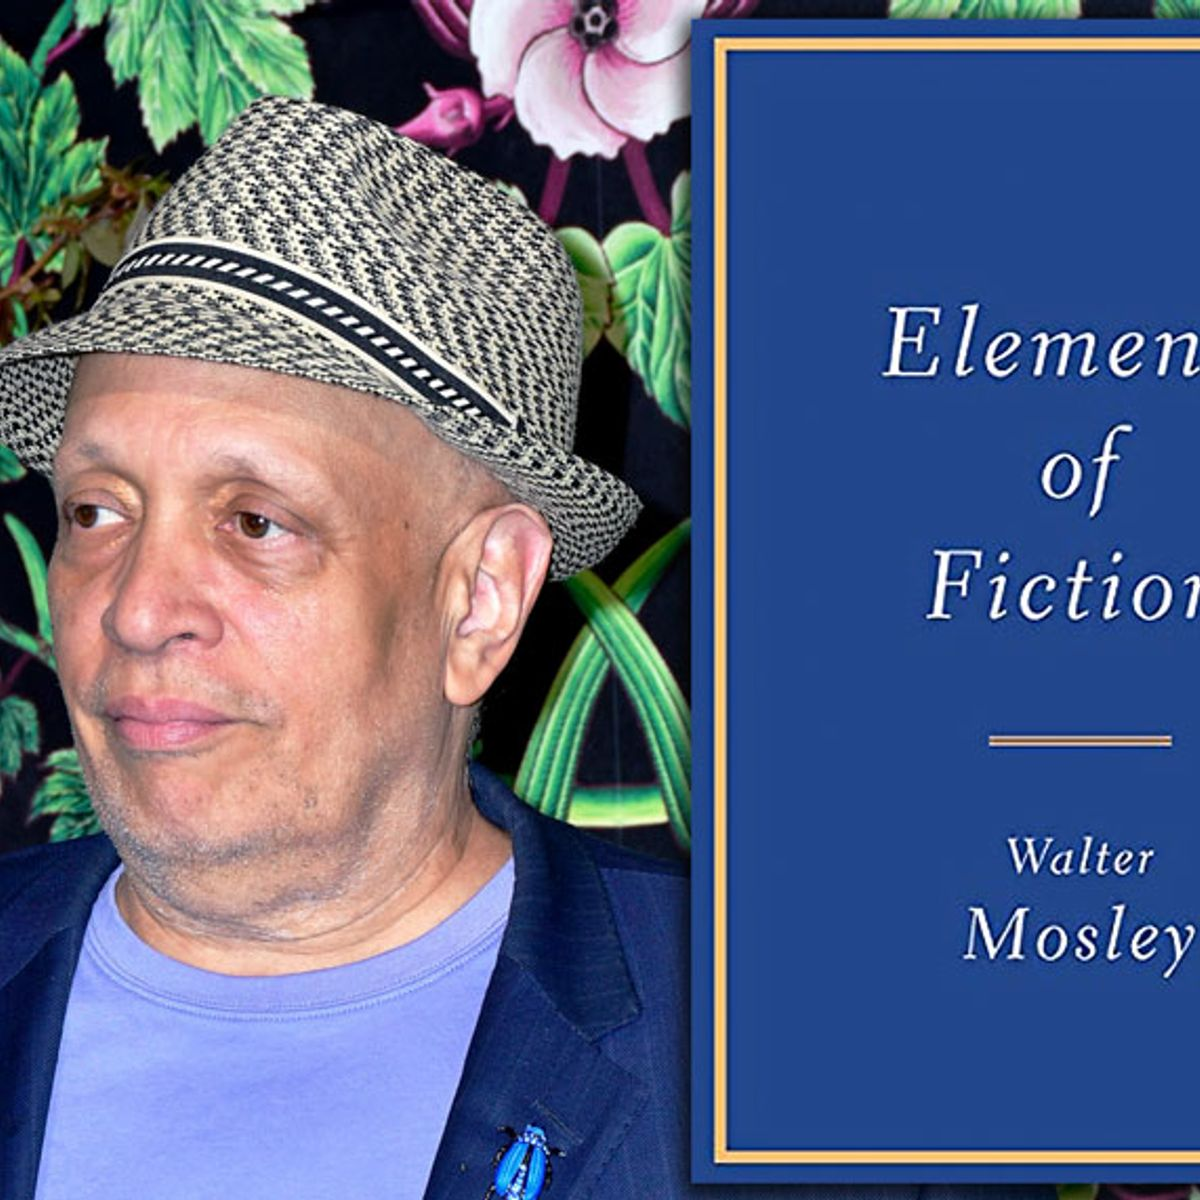 Walter Mosley on the fantasy of Whiteness and how Dubya was worse than Trump